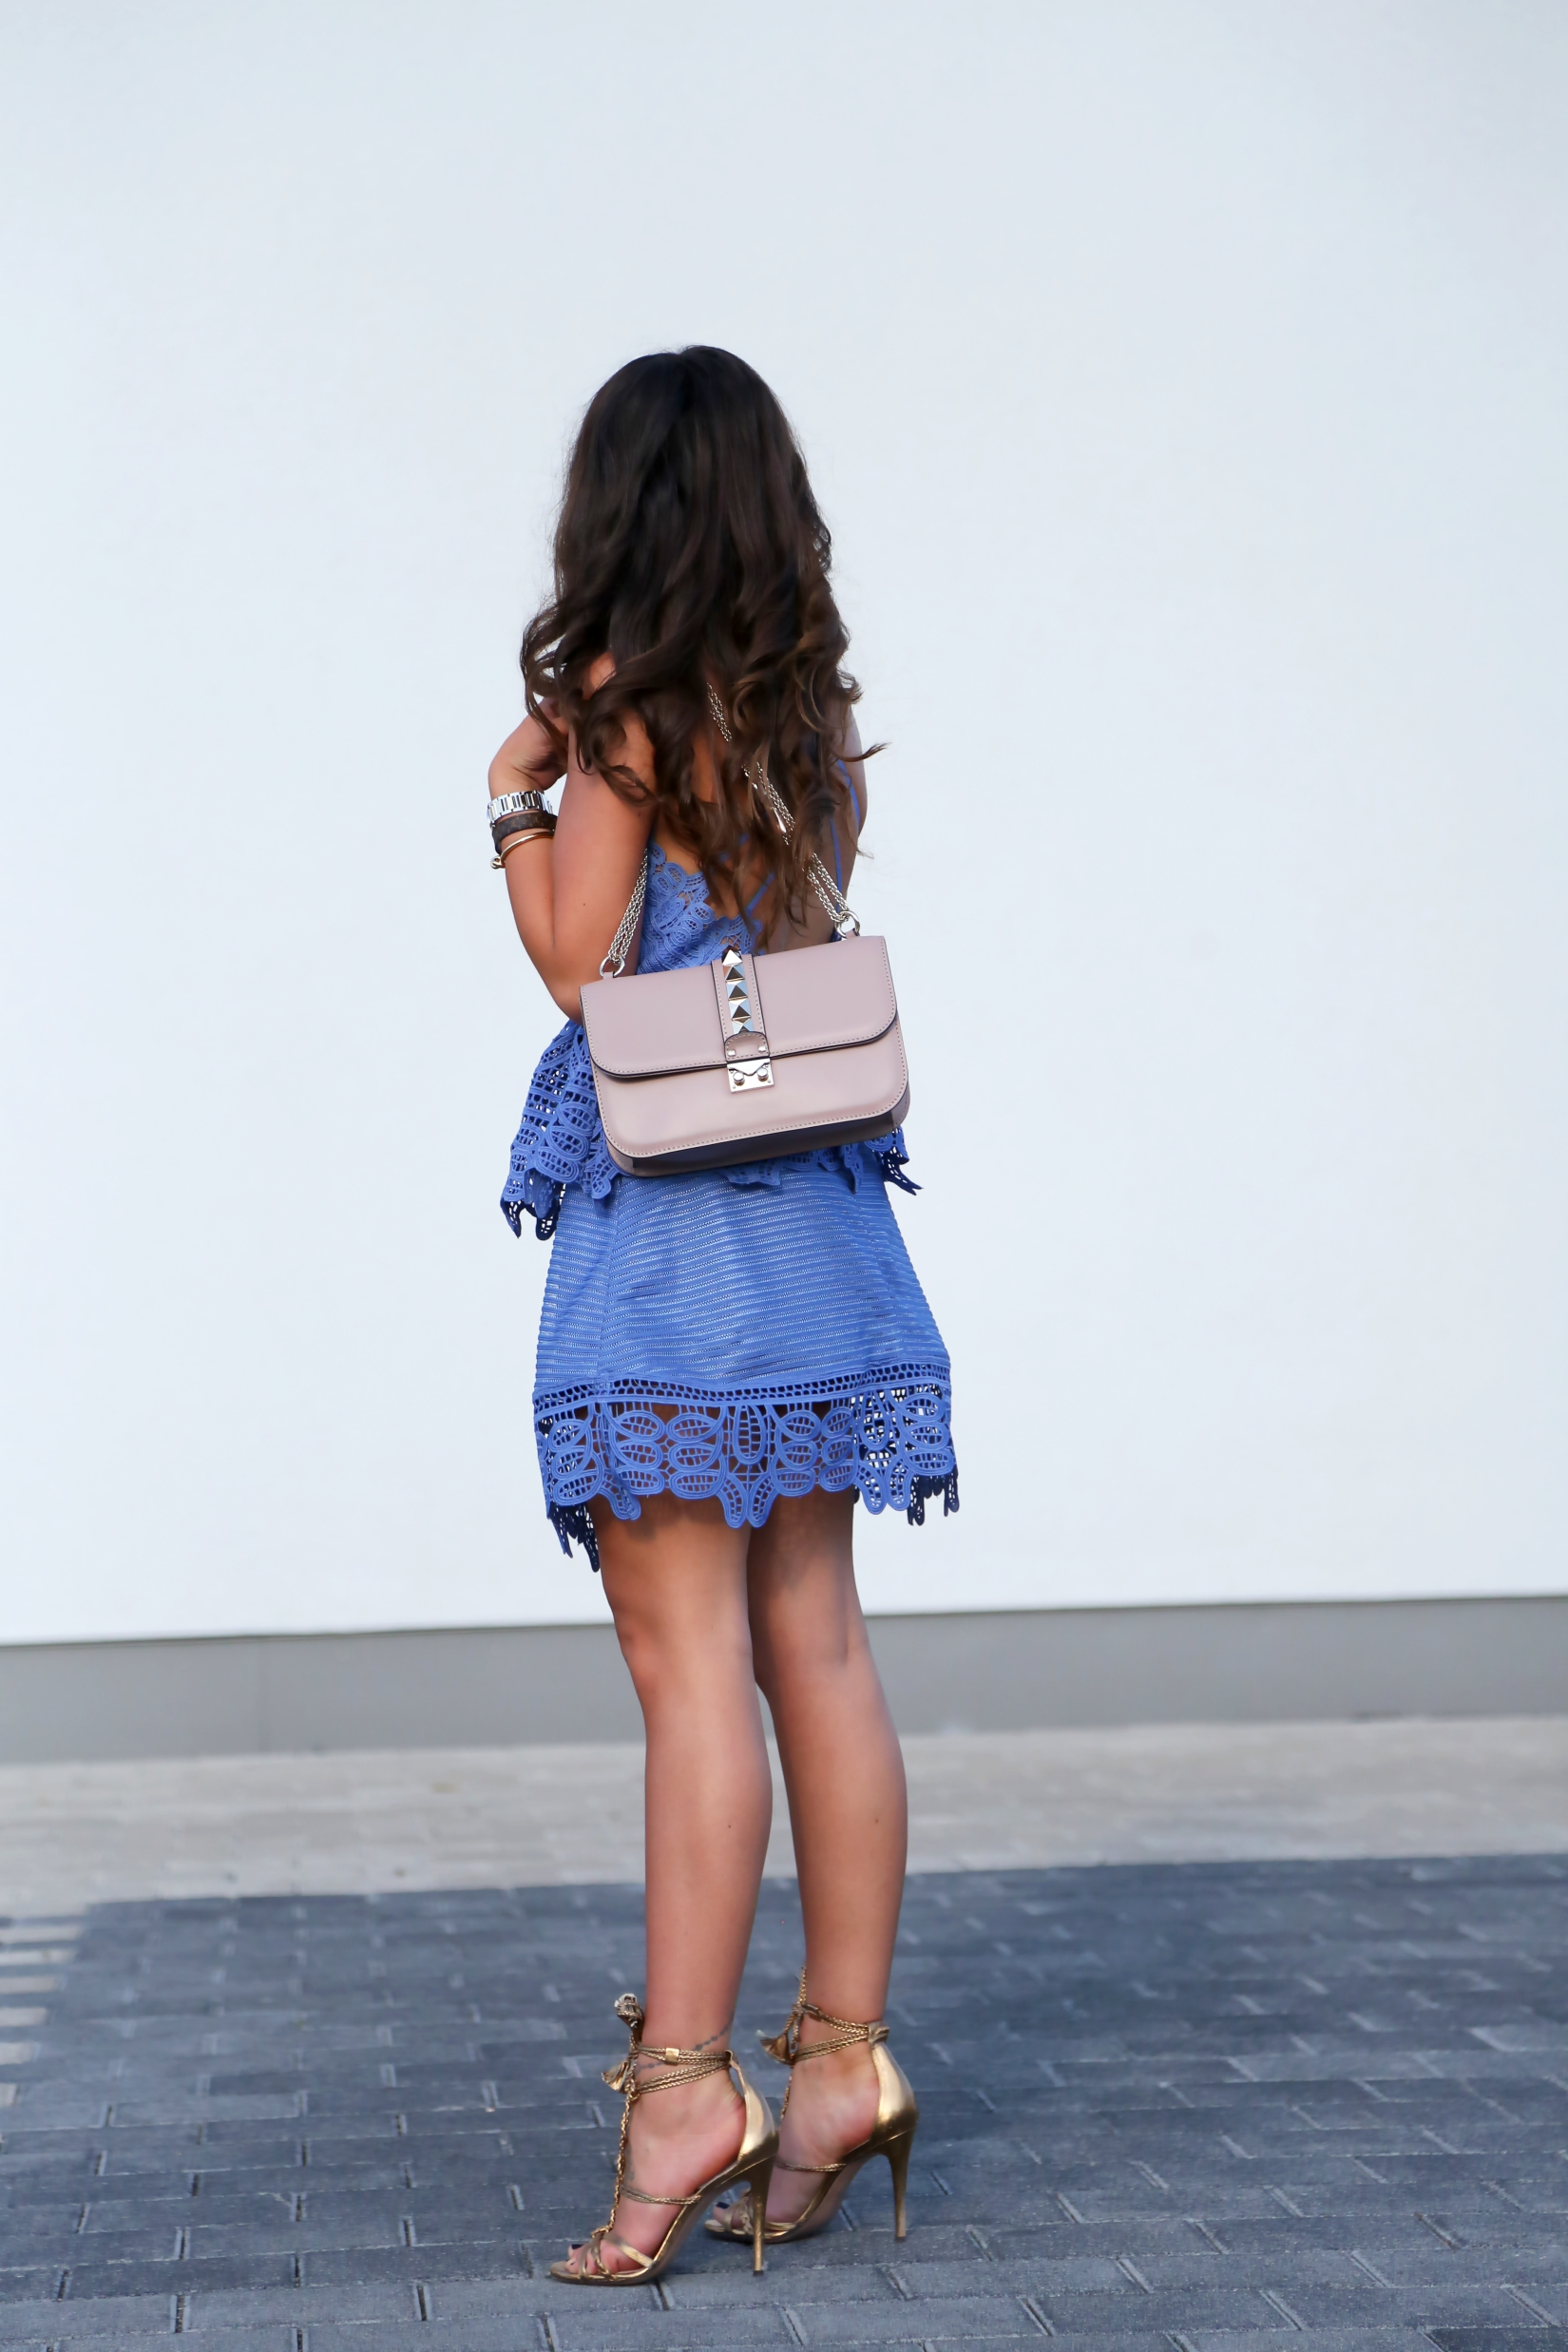 outfit-lace-dress-trim-selfportrait-valentino-glamlock-bag